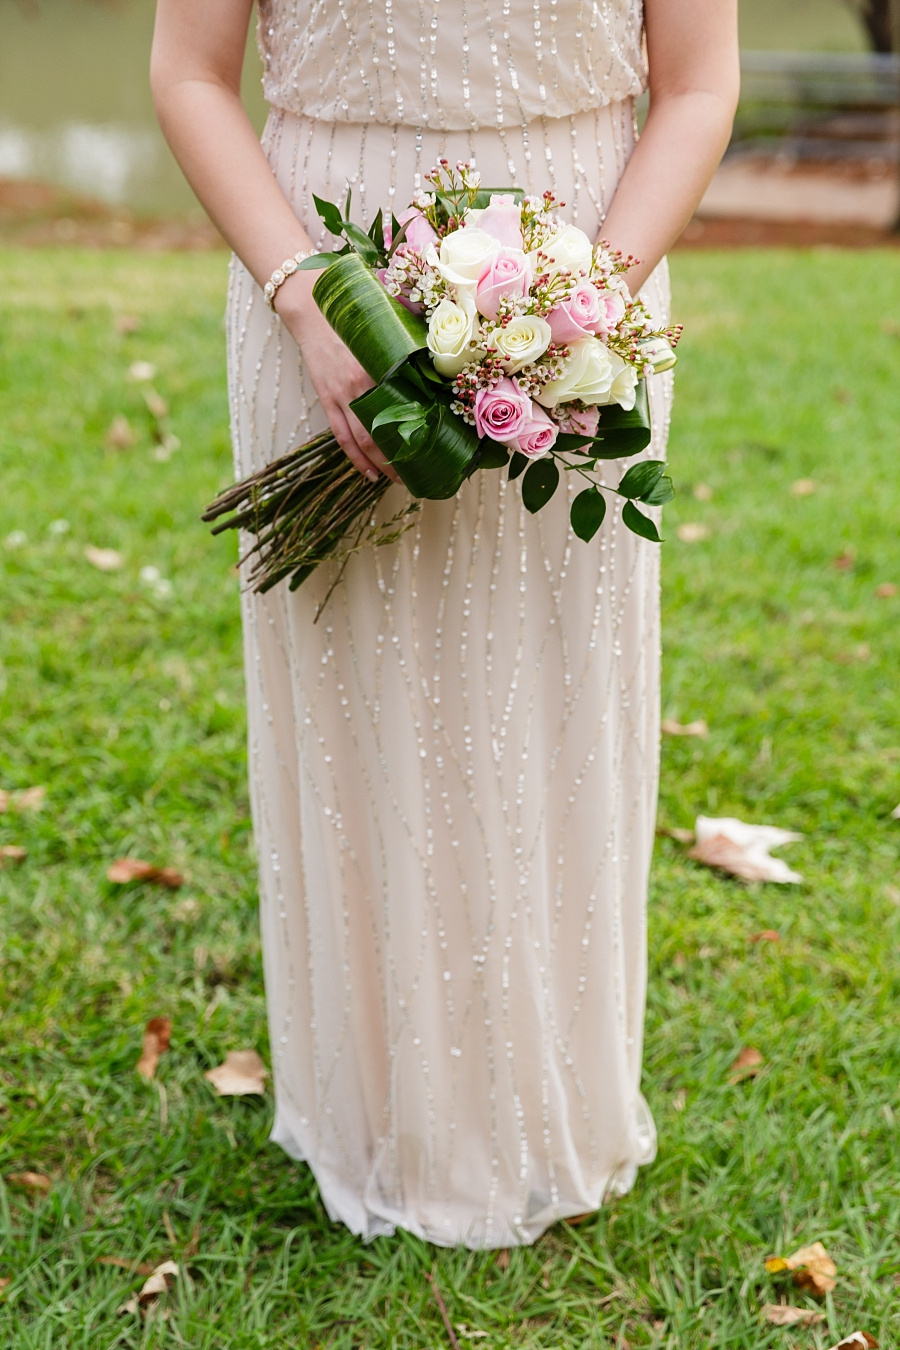 Stacy-Anderson-Photography-Houston-Courthouse-Vic-Anthony-Wedding-Photographer_0021.jpg